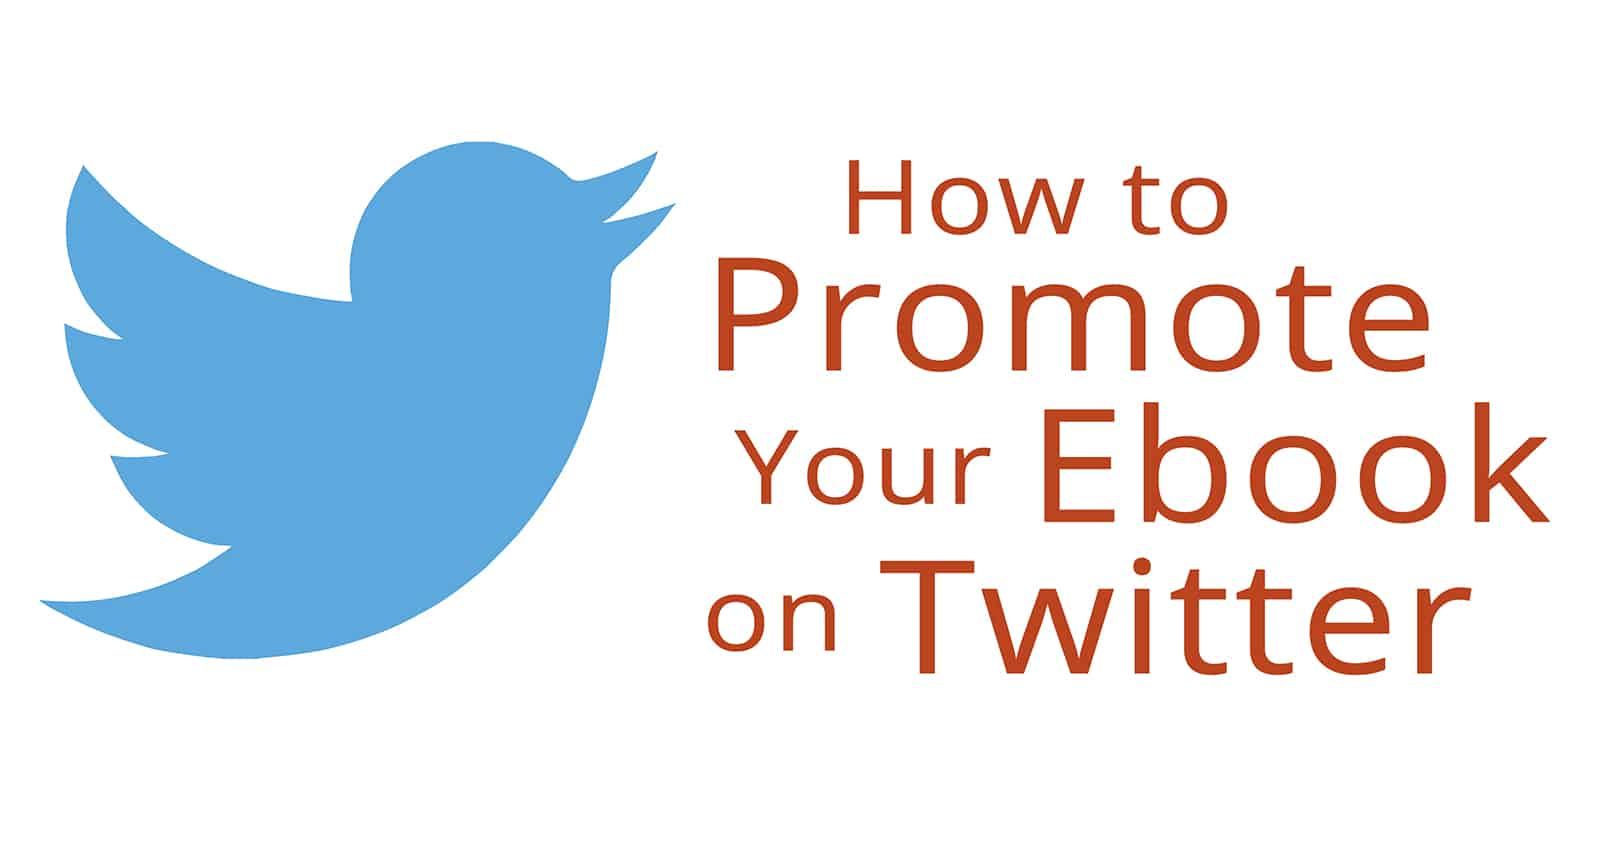 Promote Your Ebook on Twitter